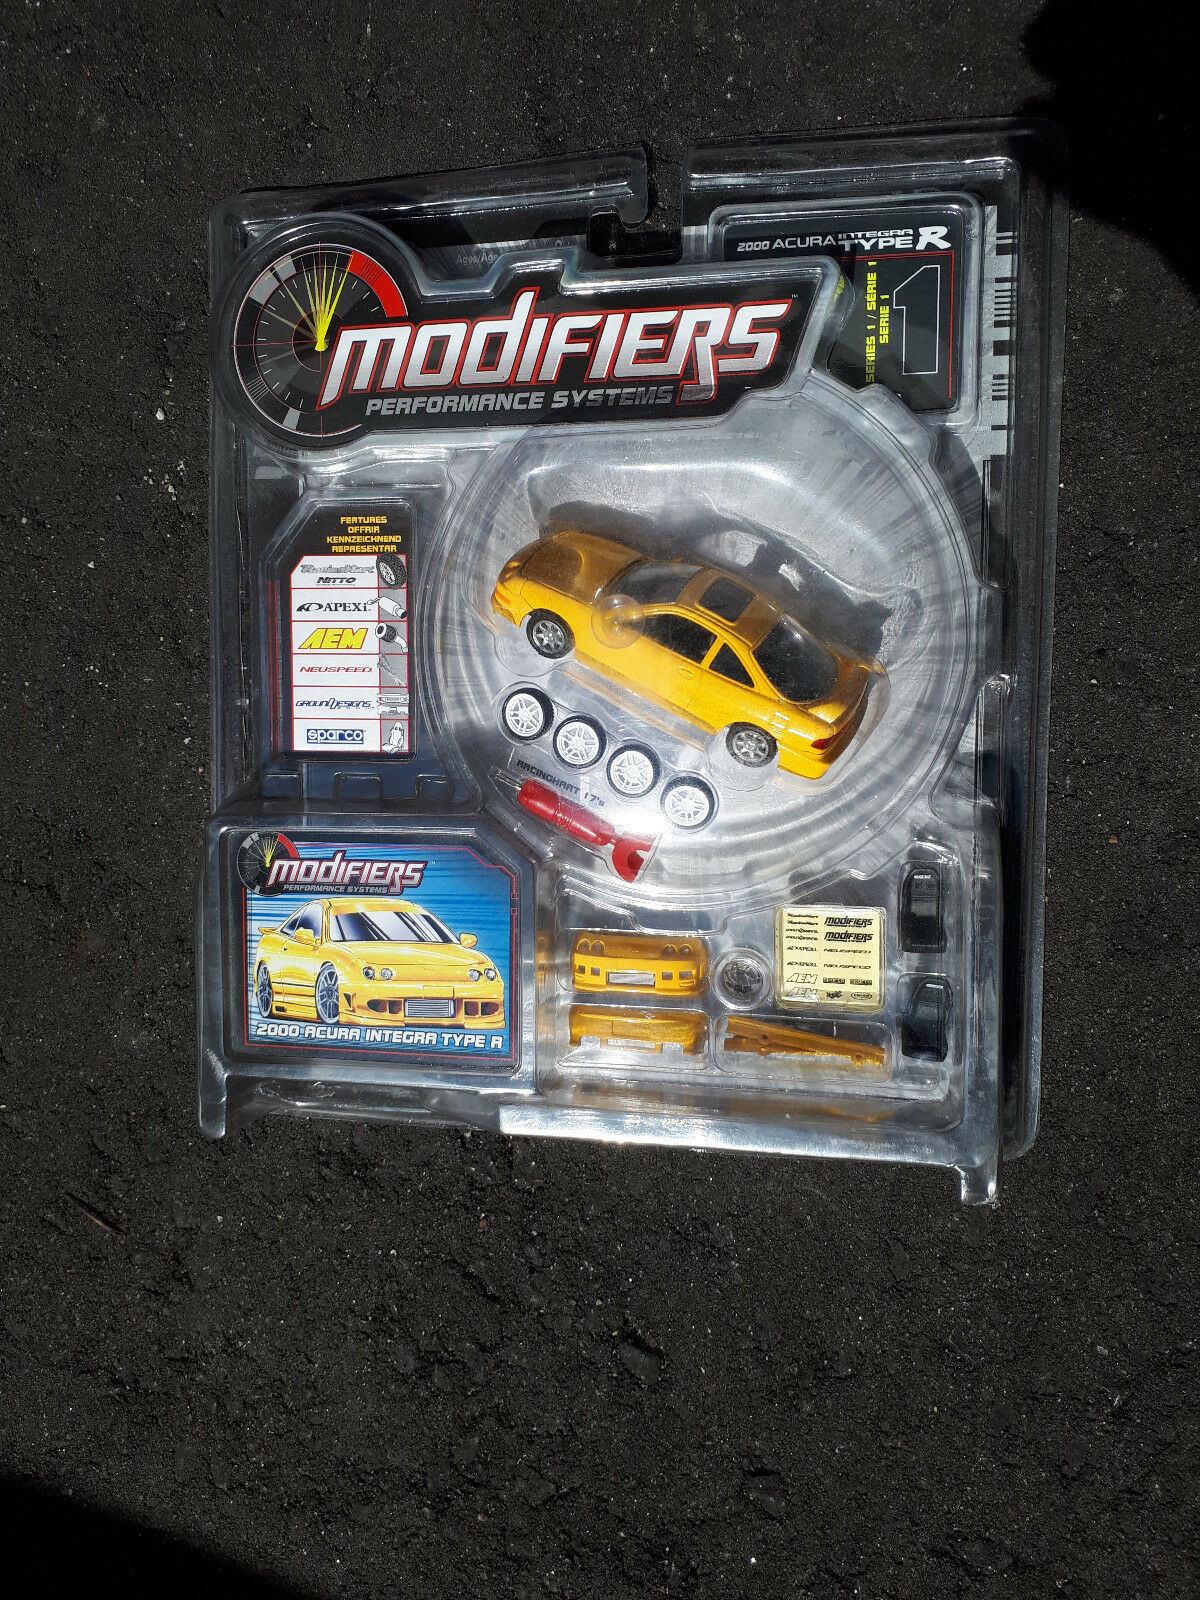 Modifiers 1 43 Series 1 - 2000 Acura Integra Type R Concepts